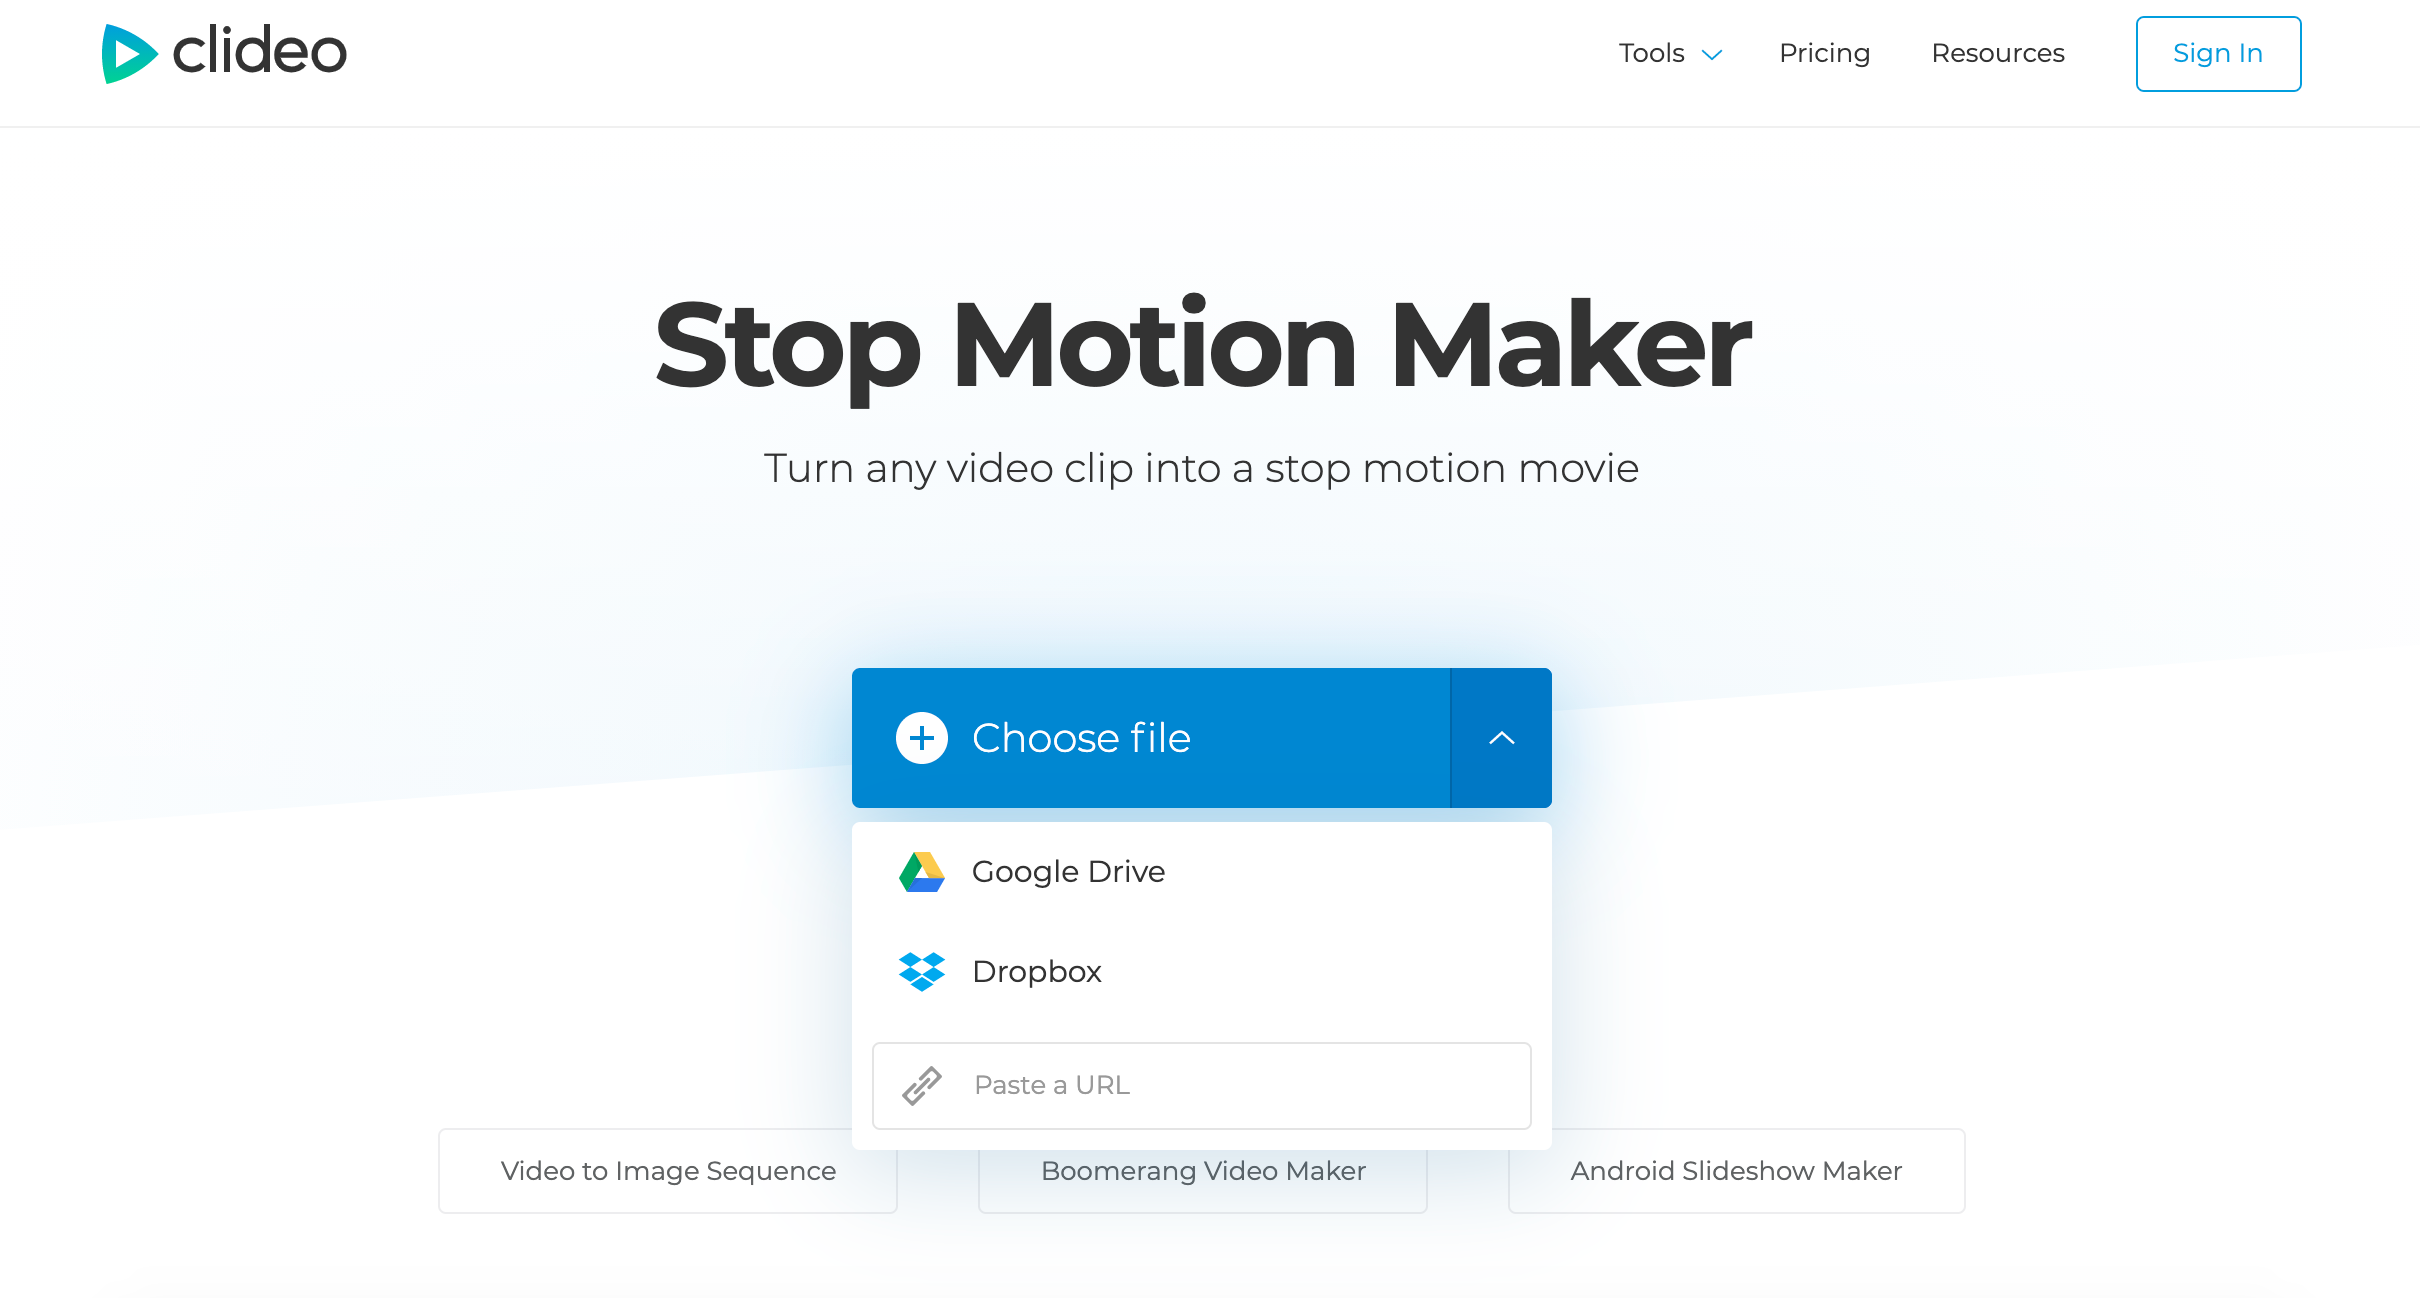 Upload Android video for stop motion